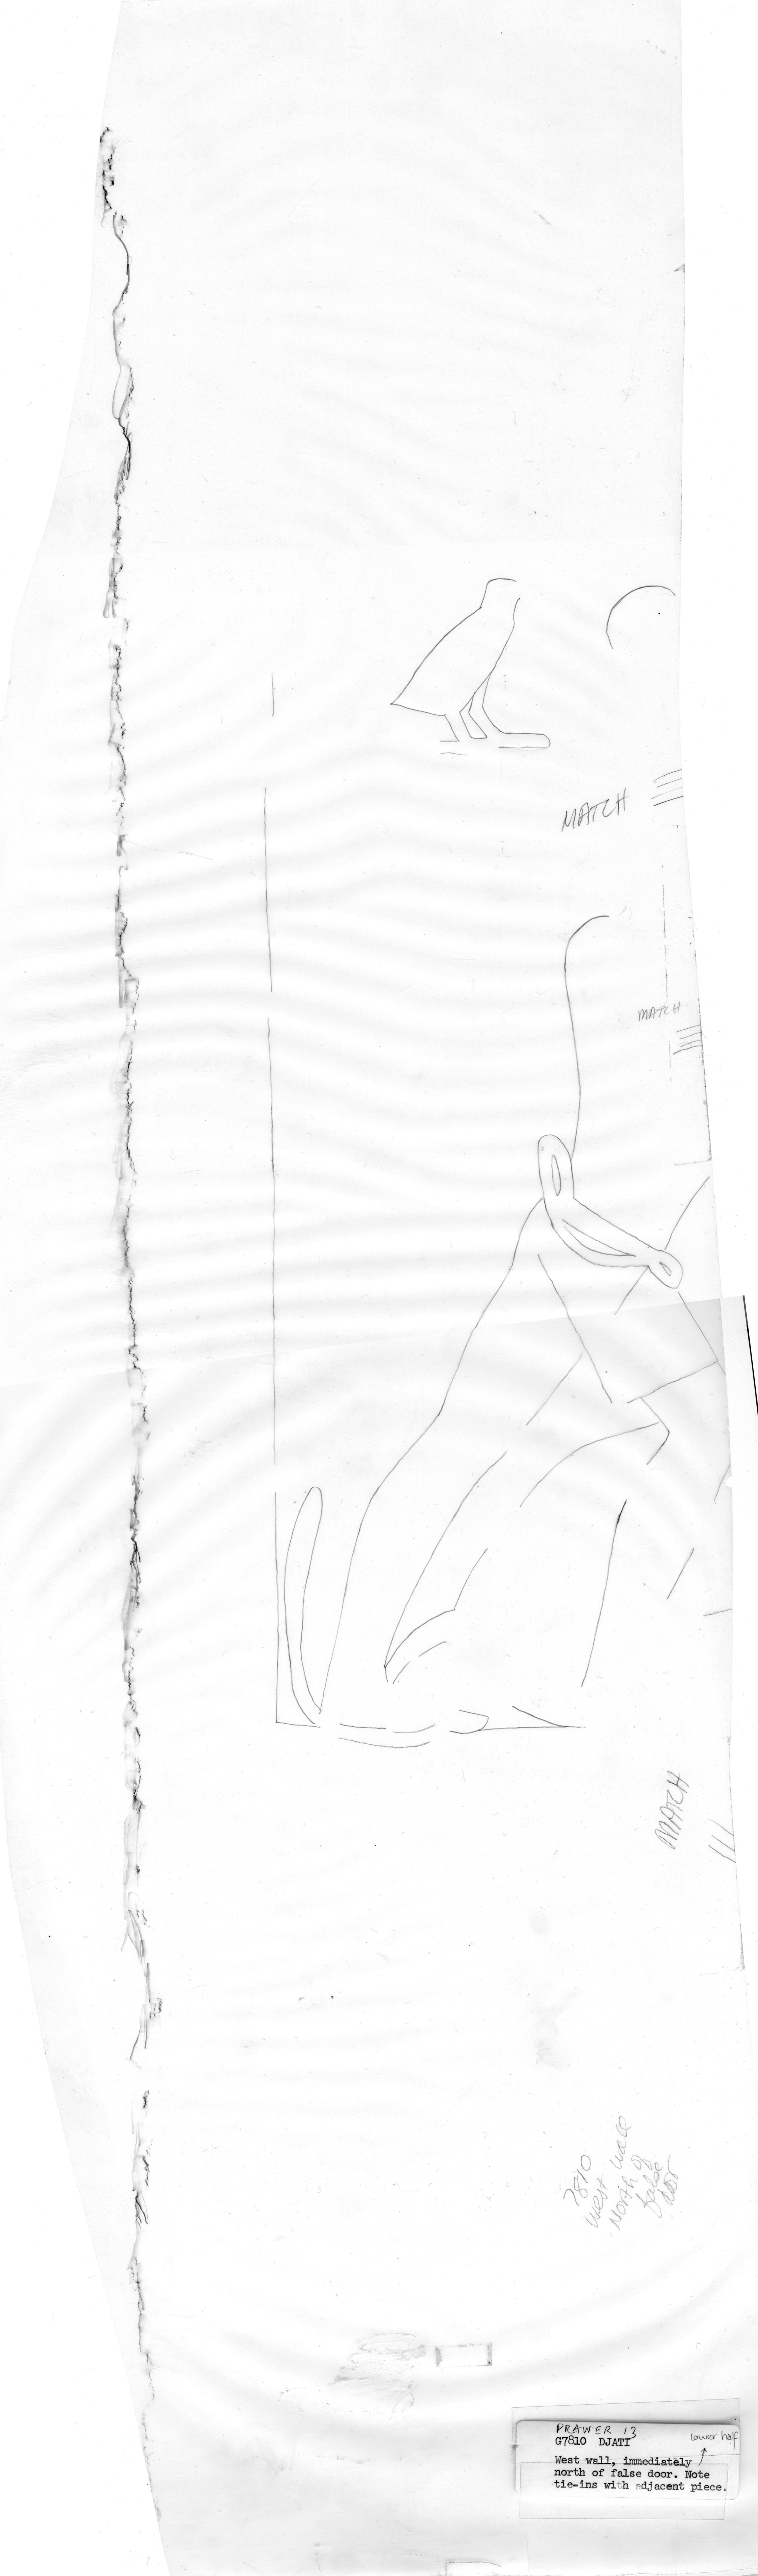 Drawings: G 7810: relief from W wall